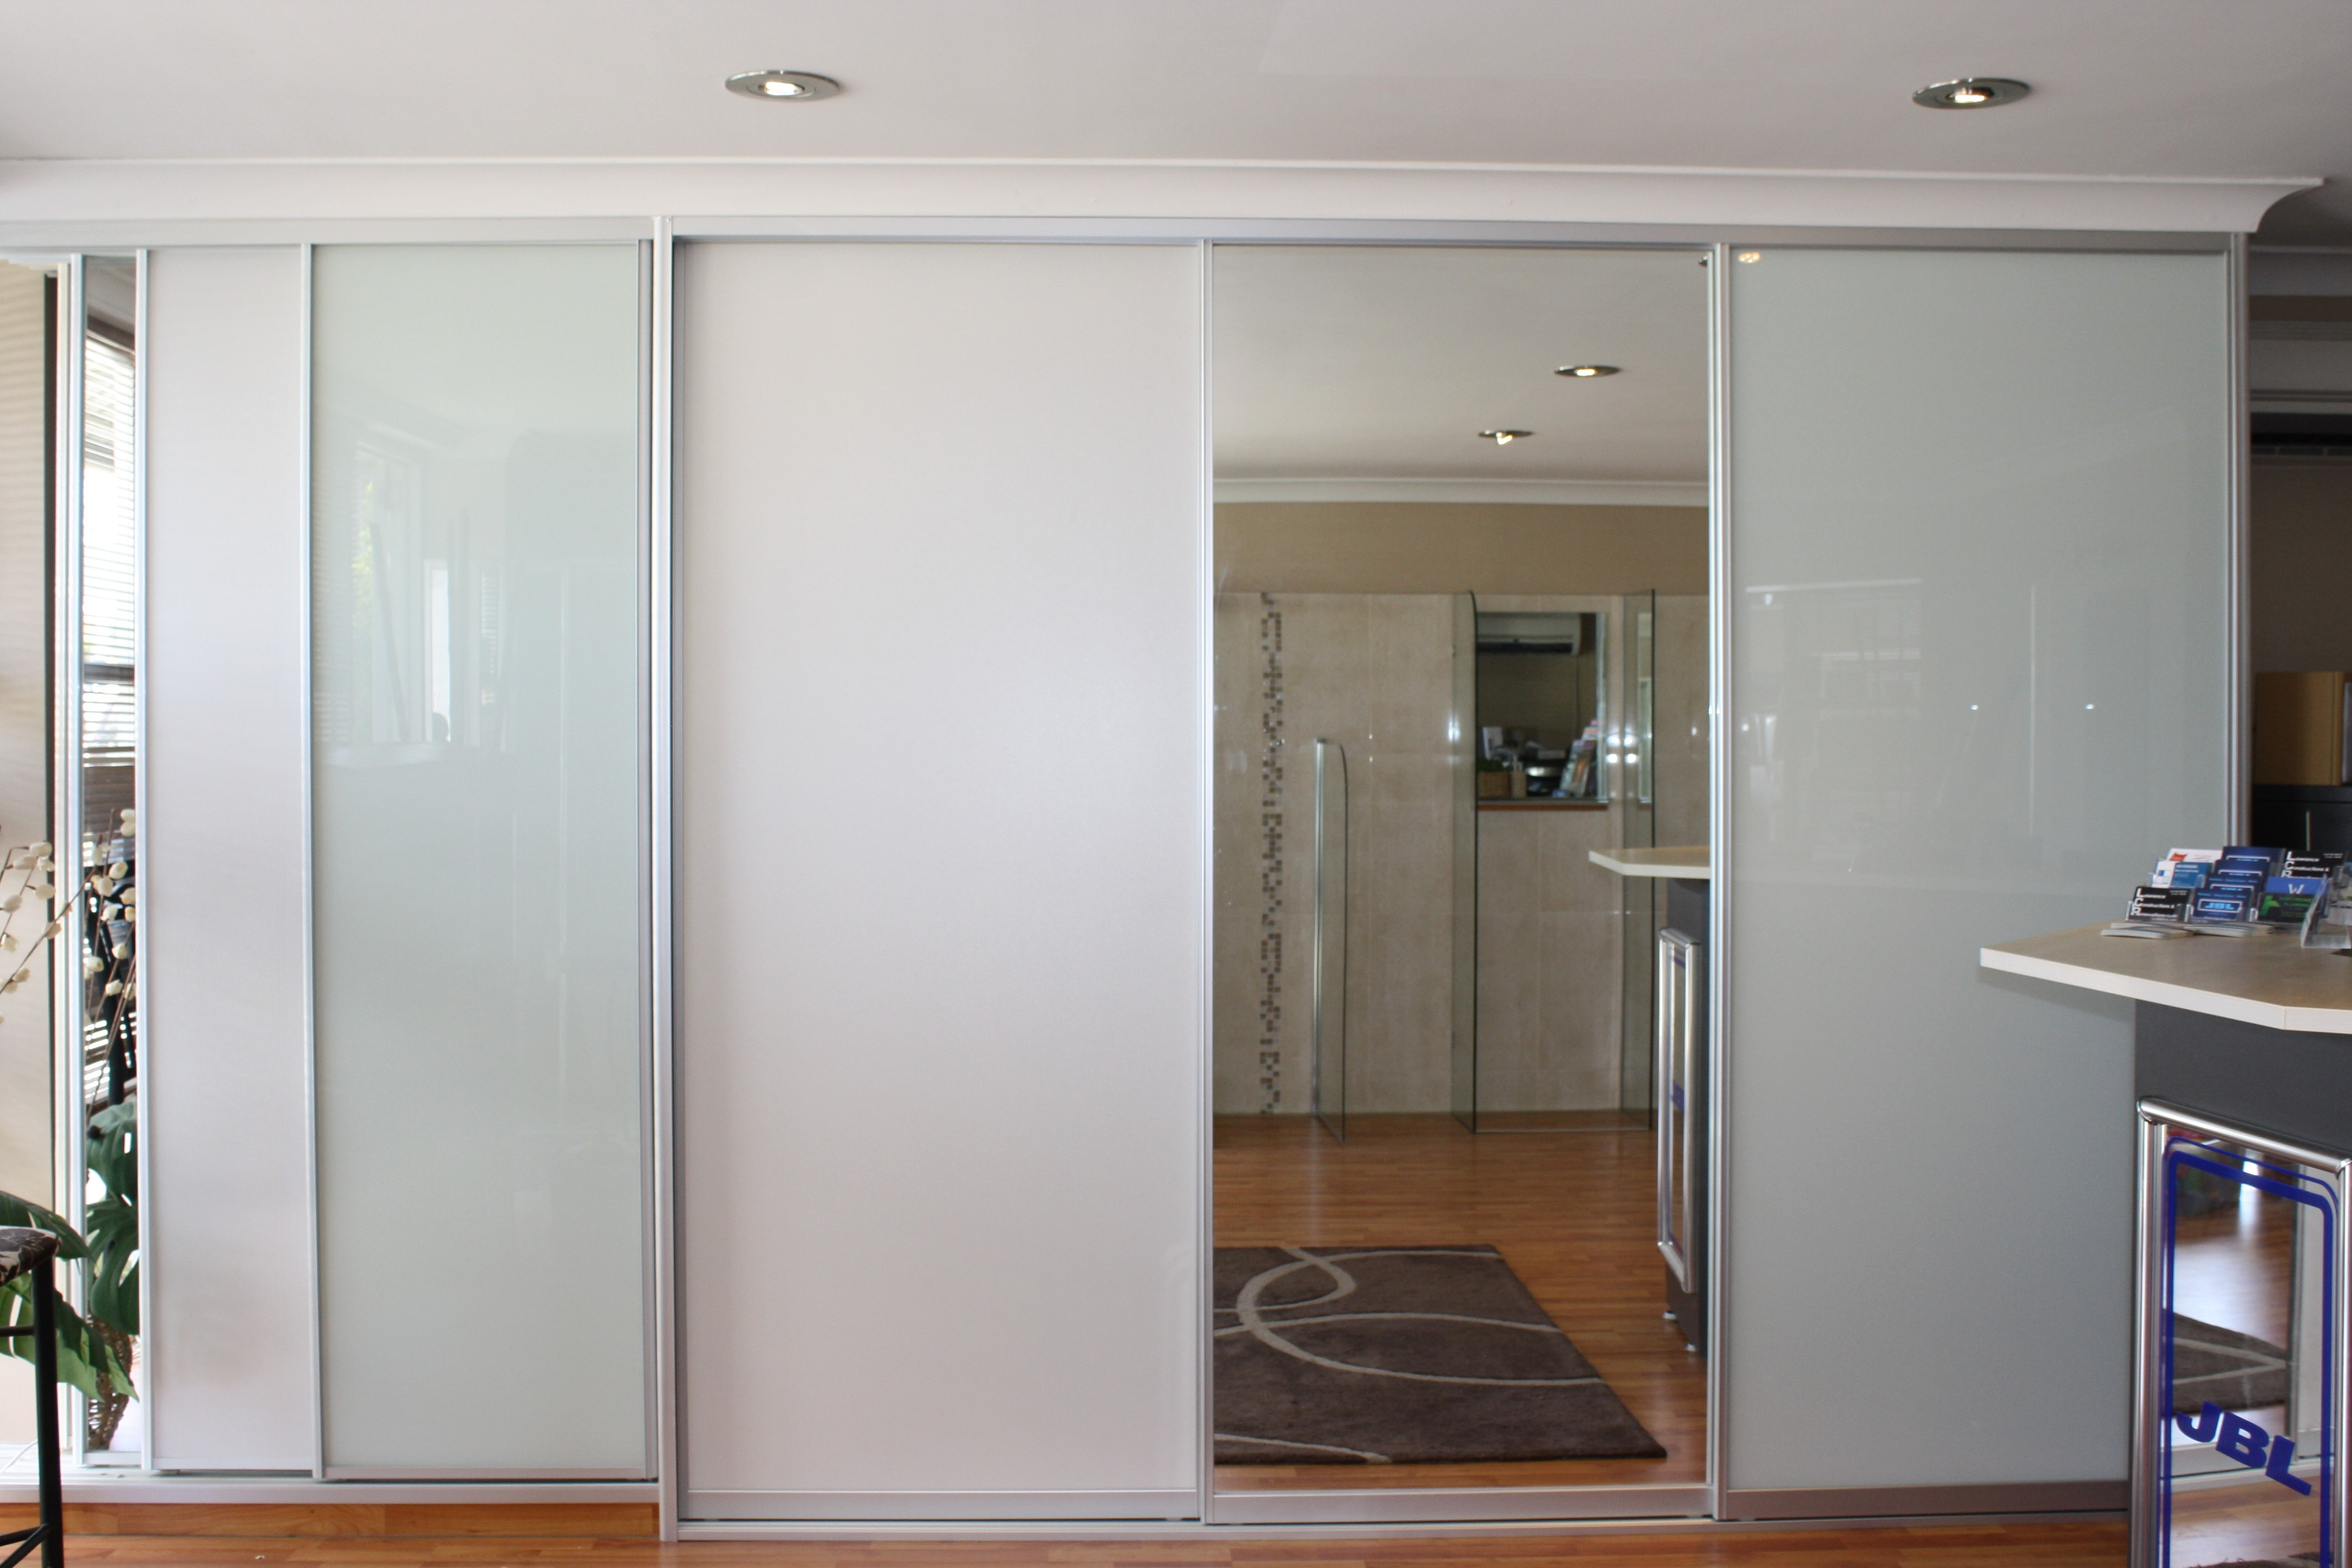 Oxley Nu-Look Windows - Shower Screens - Cnr Fernhill Rd and Arcacia ...